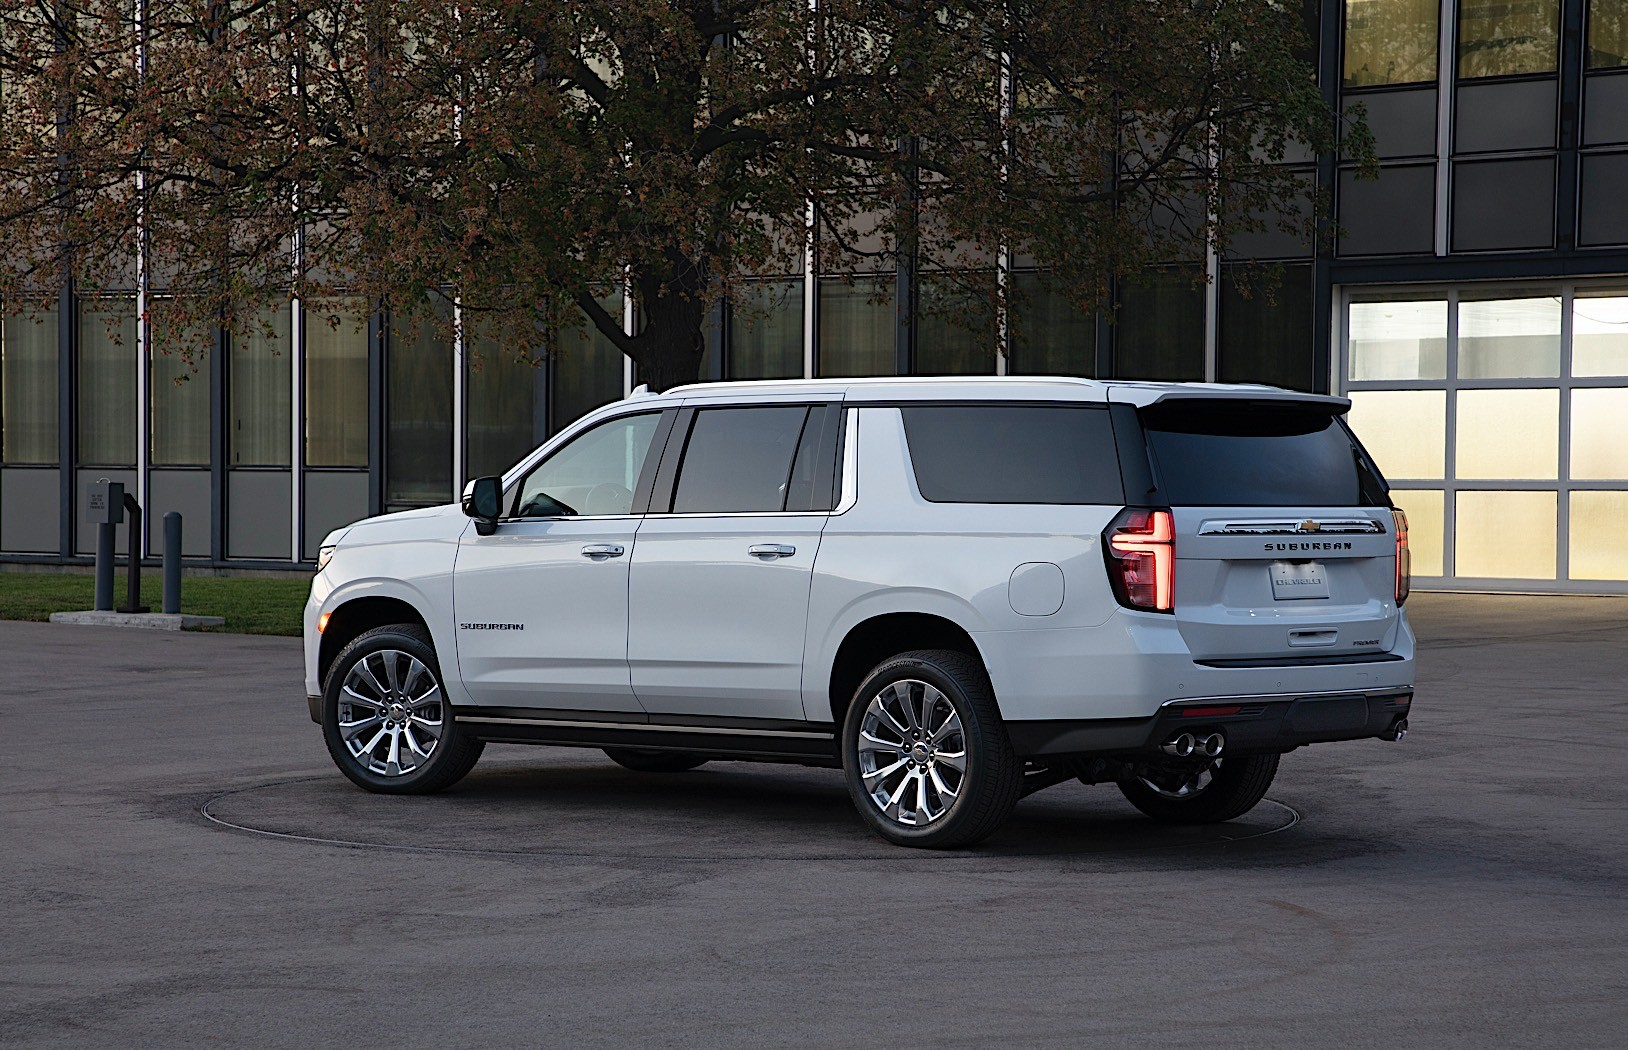 2021 Chevy Suburban Is Here, Continues the Story of the ...